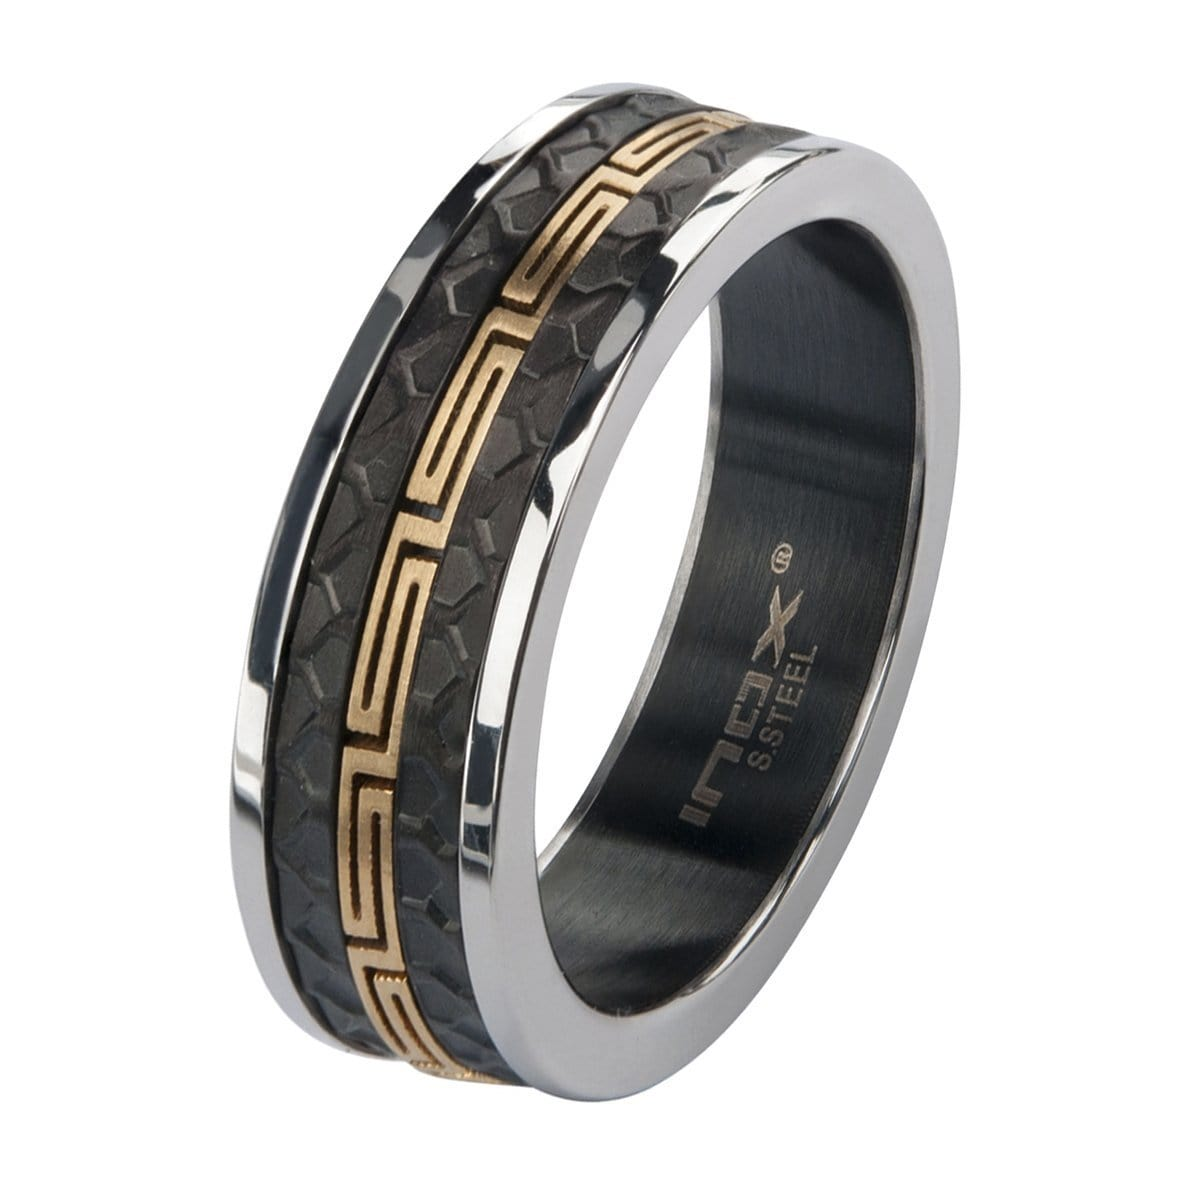 Gold, Black & Silver Stainless Steel Honeycomb & Greek Stripe Ring Rings